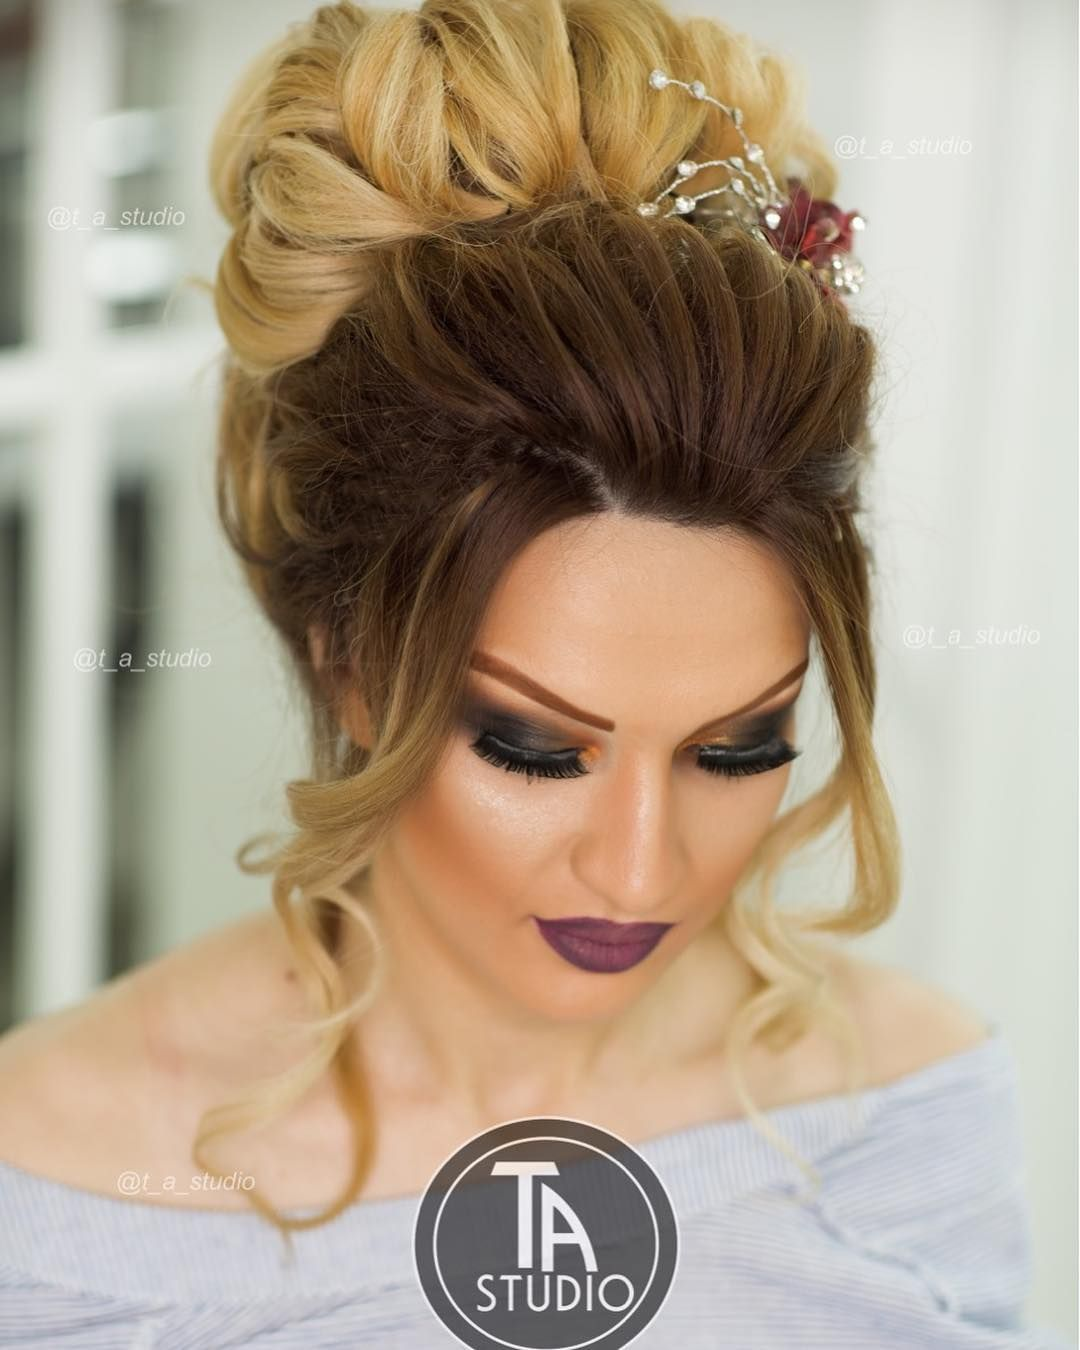 2 663 Begenme 3 Yorum Instagram 39 Da Stilist Tunzale C Official Page T A Studio Quot Diqqet Diqqet Yaln Hair Styles Wedding Hairstyles Make Up